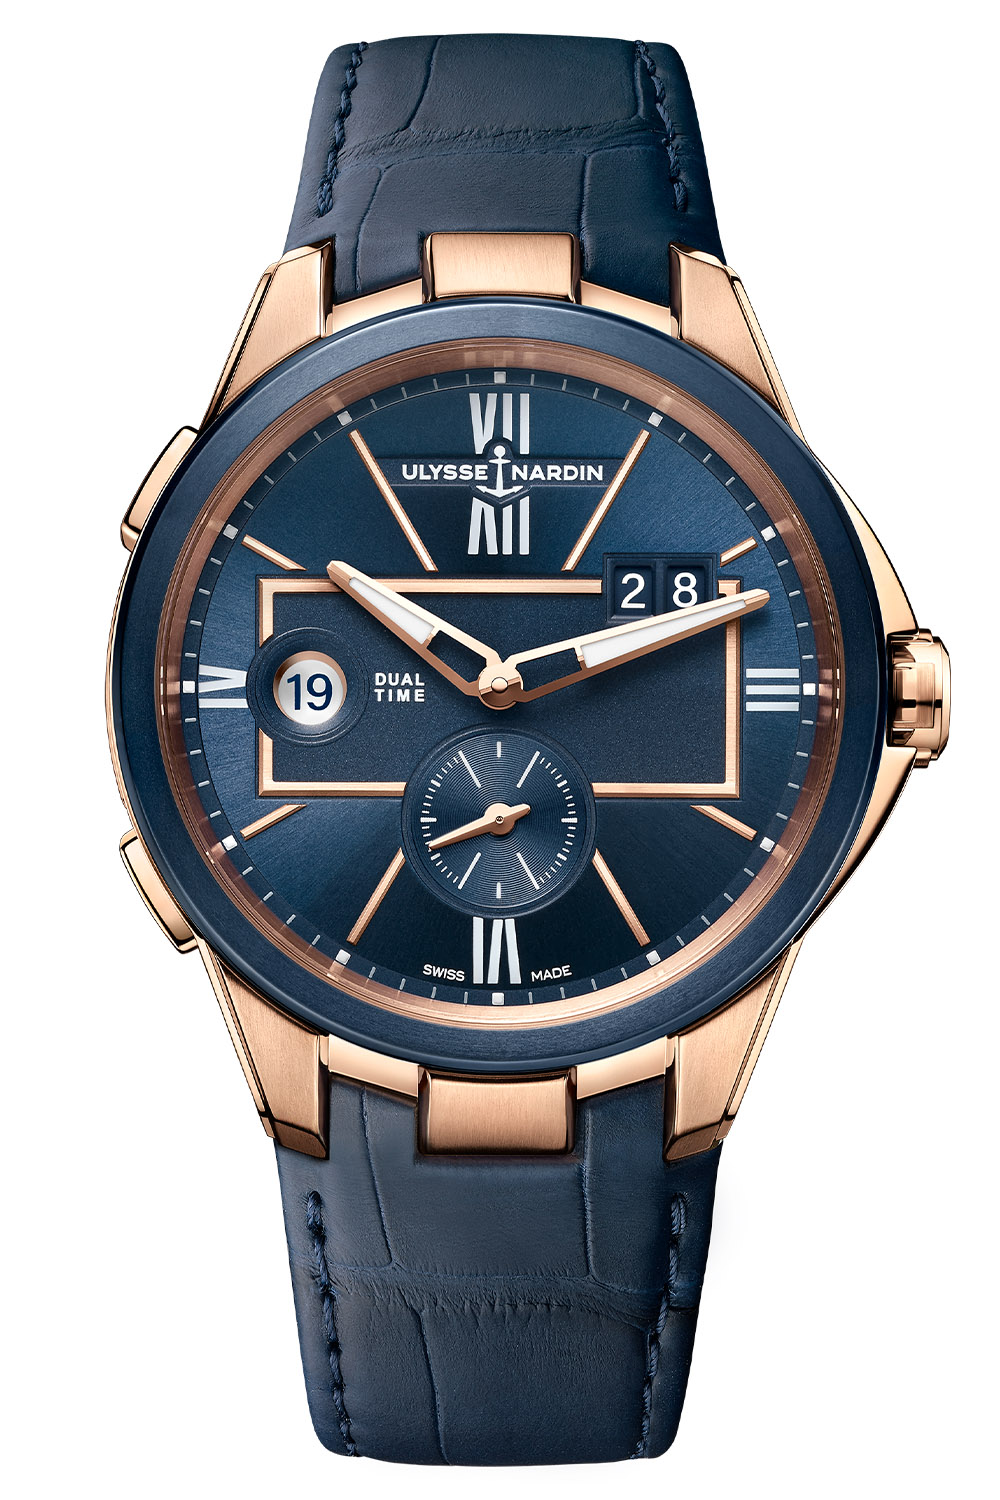 Ulysse Nardin Dual Time 42mm Collection 2020 - 1